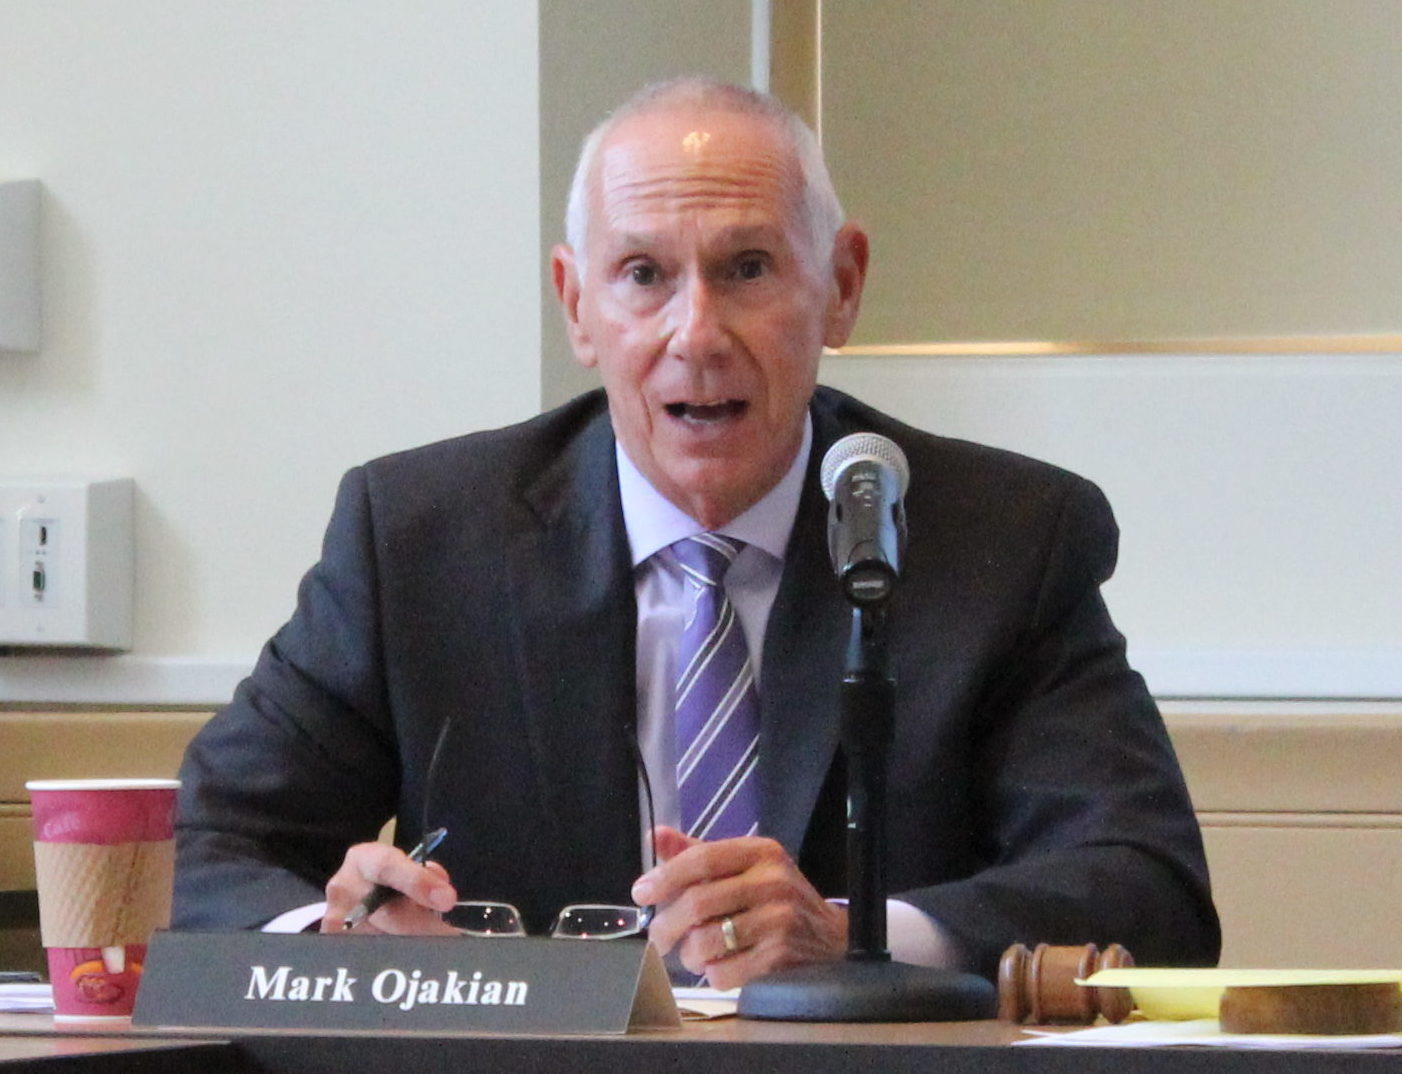 Faculty balk at Ojakian's 'clandestine' plan for CSCU's future